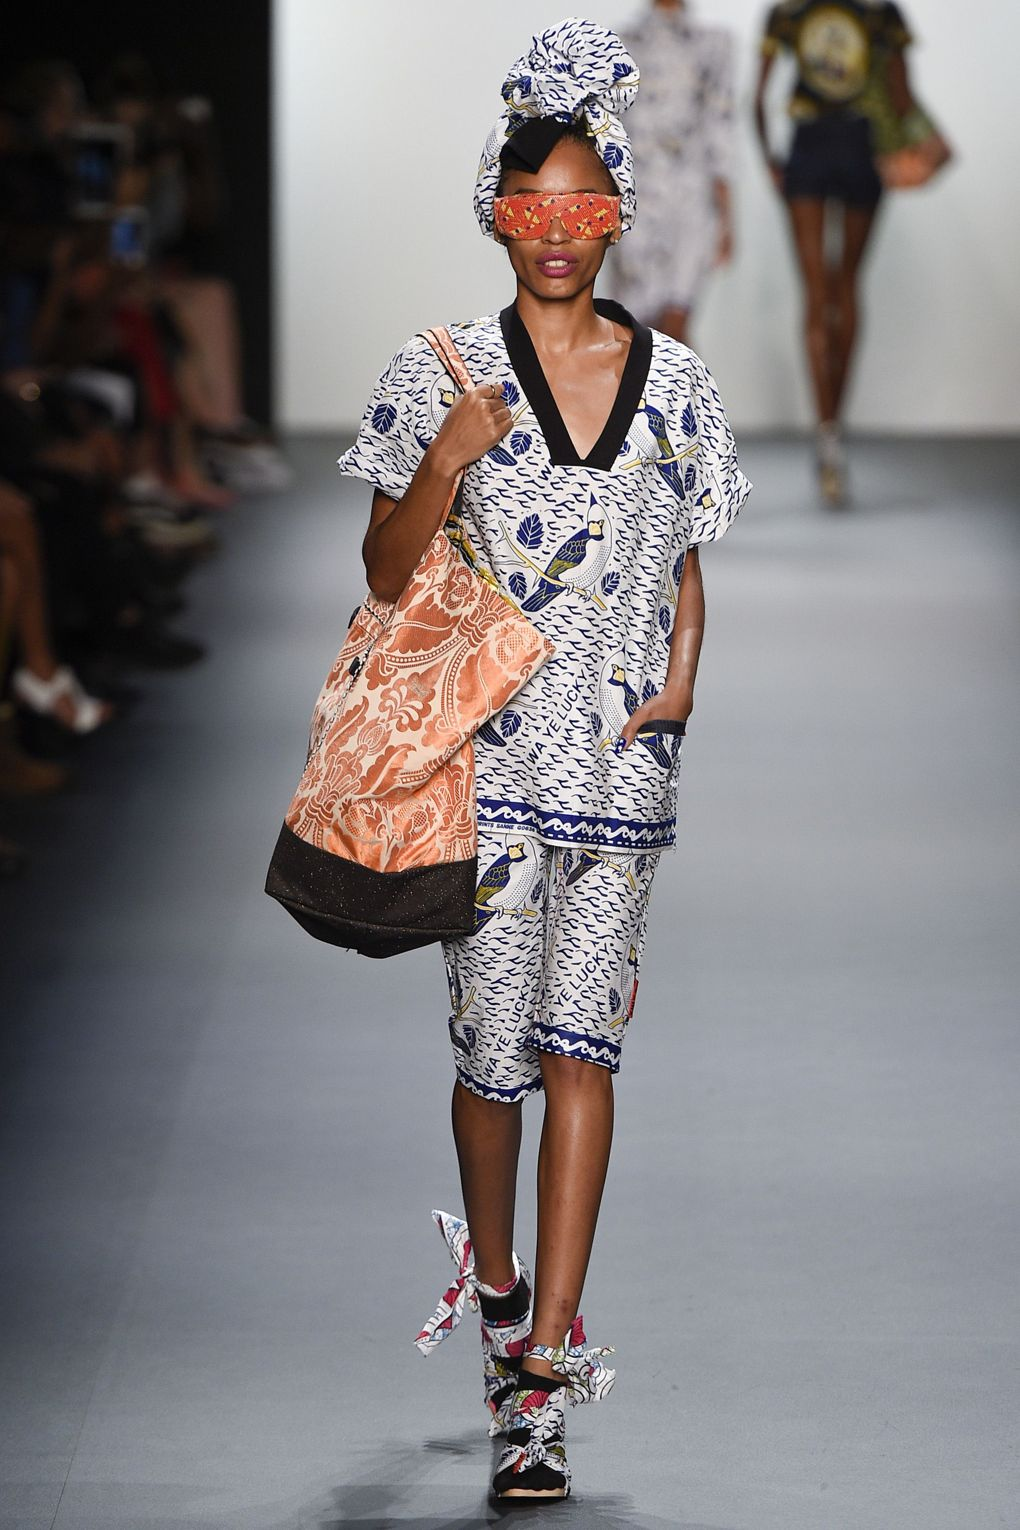 fashion-week-xuly-be%cc%88t-xuly-be%cc%88t-sprigsummer-2016-ready-to-wear-collection-11